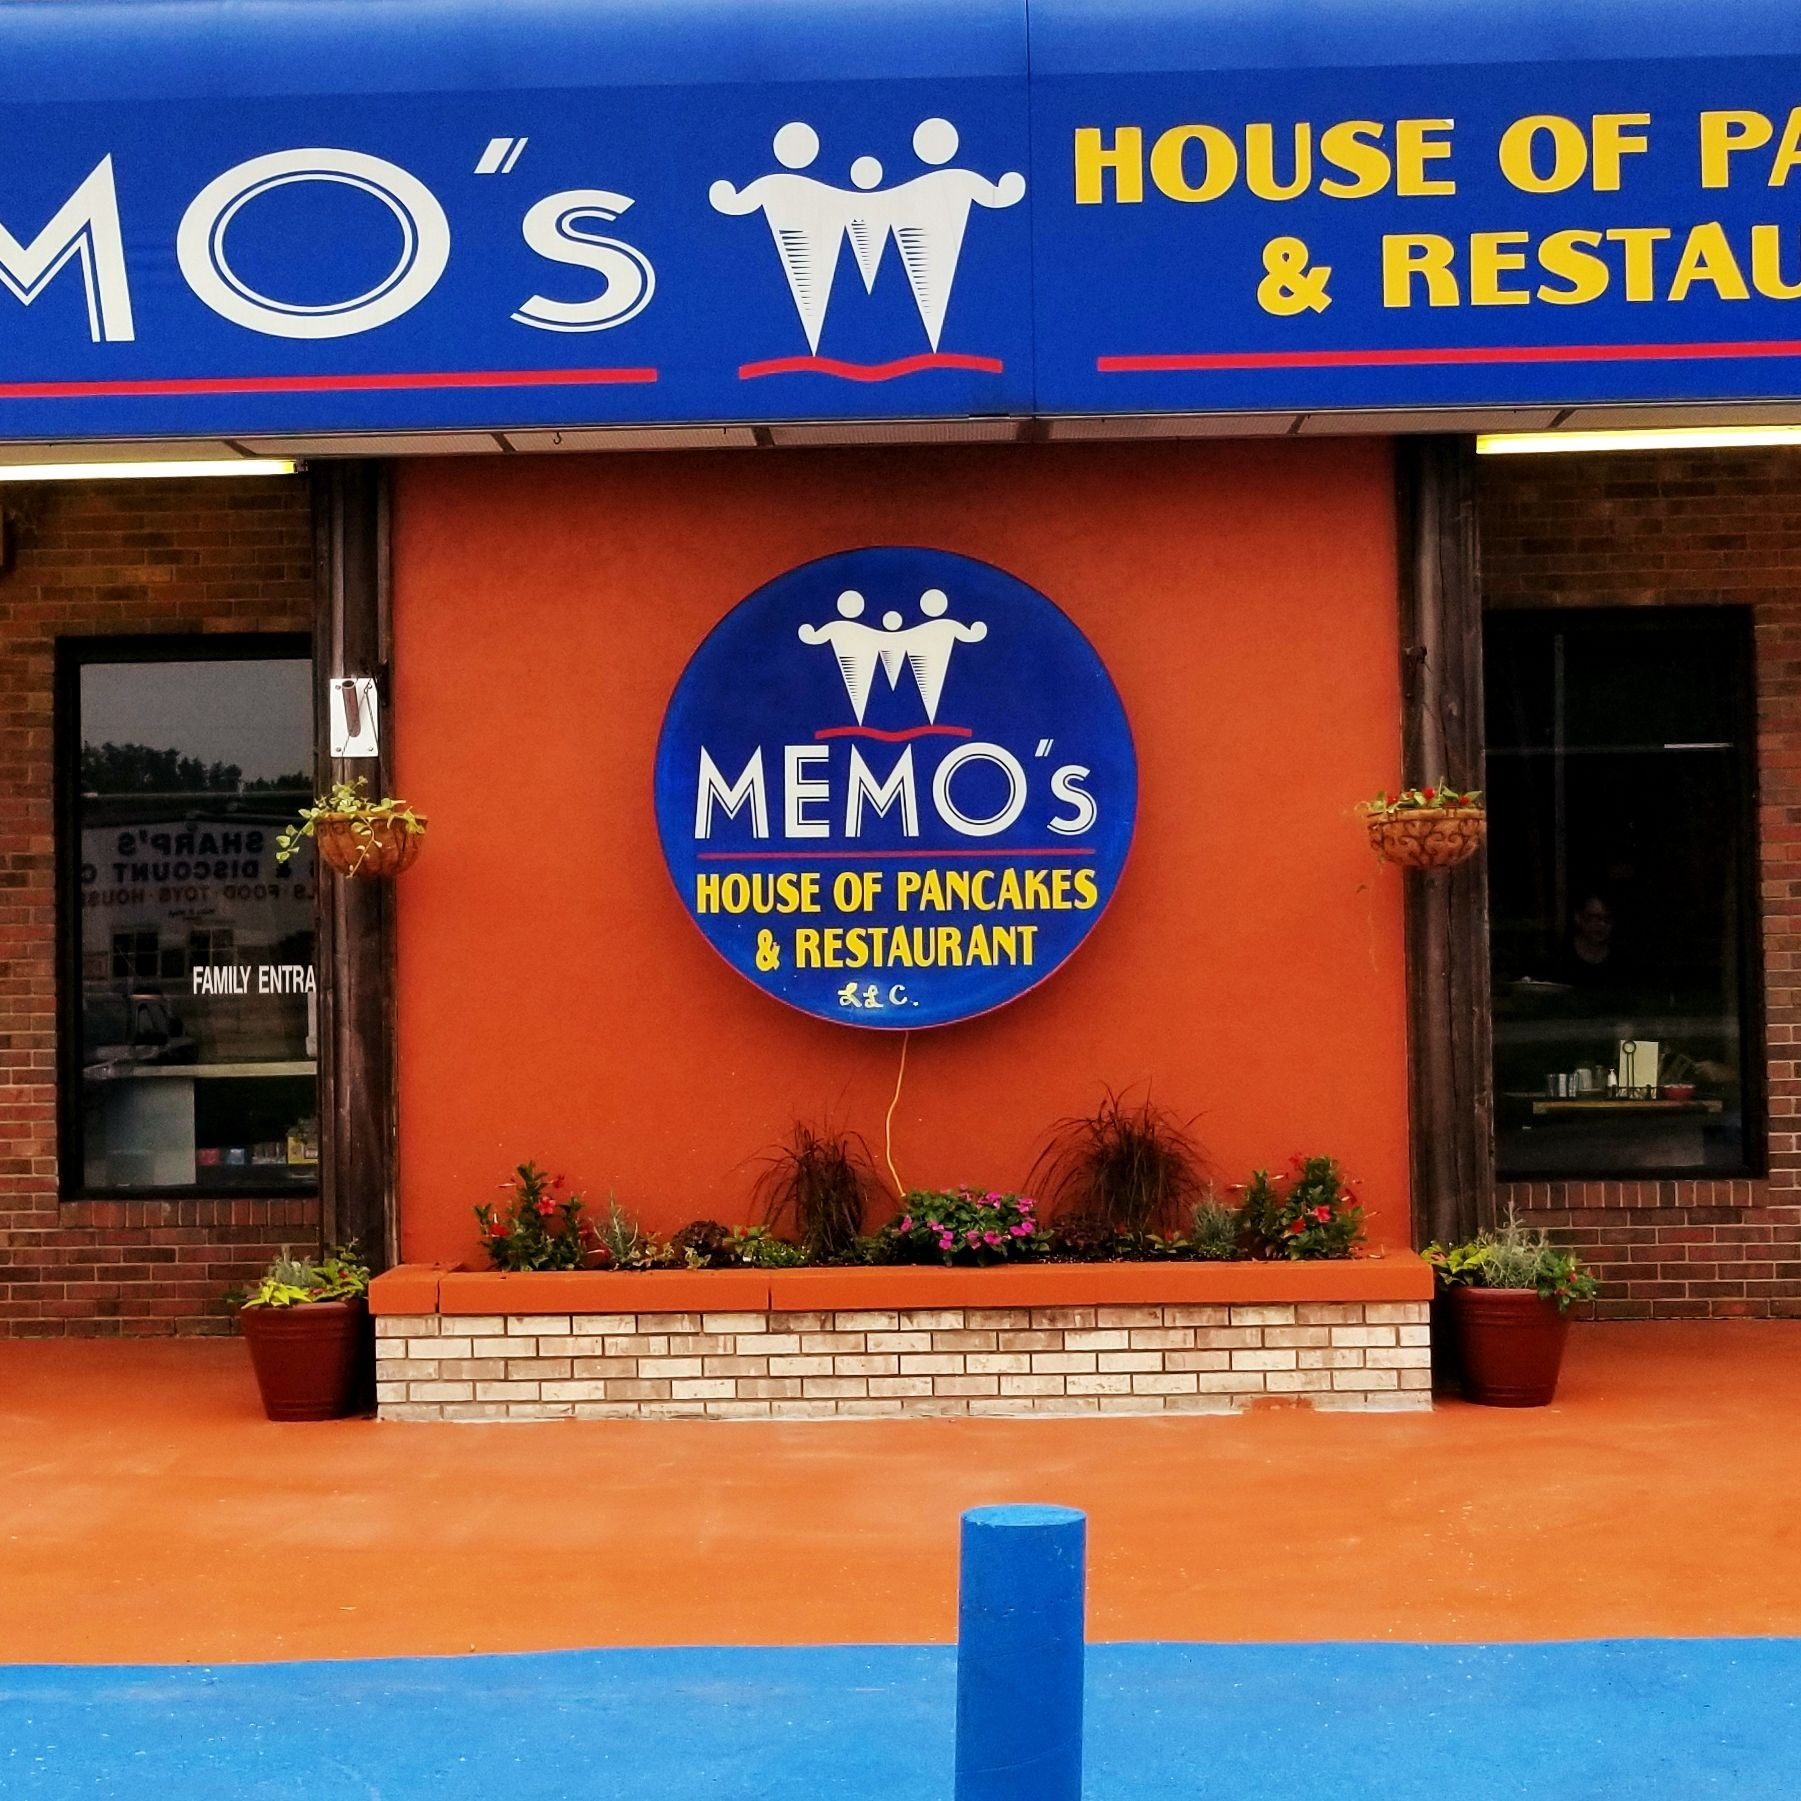 Memo's House Of Pancakes LLC